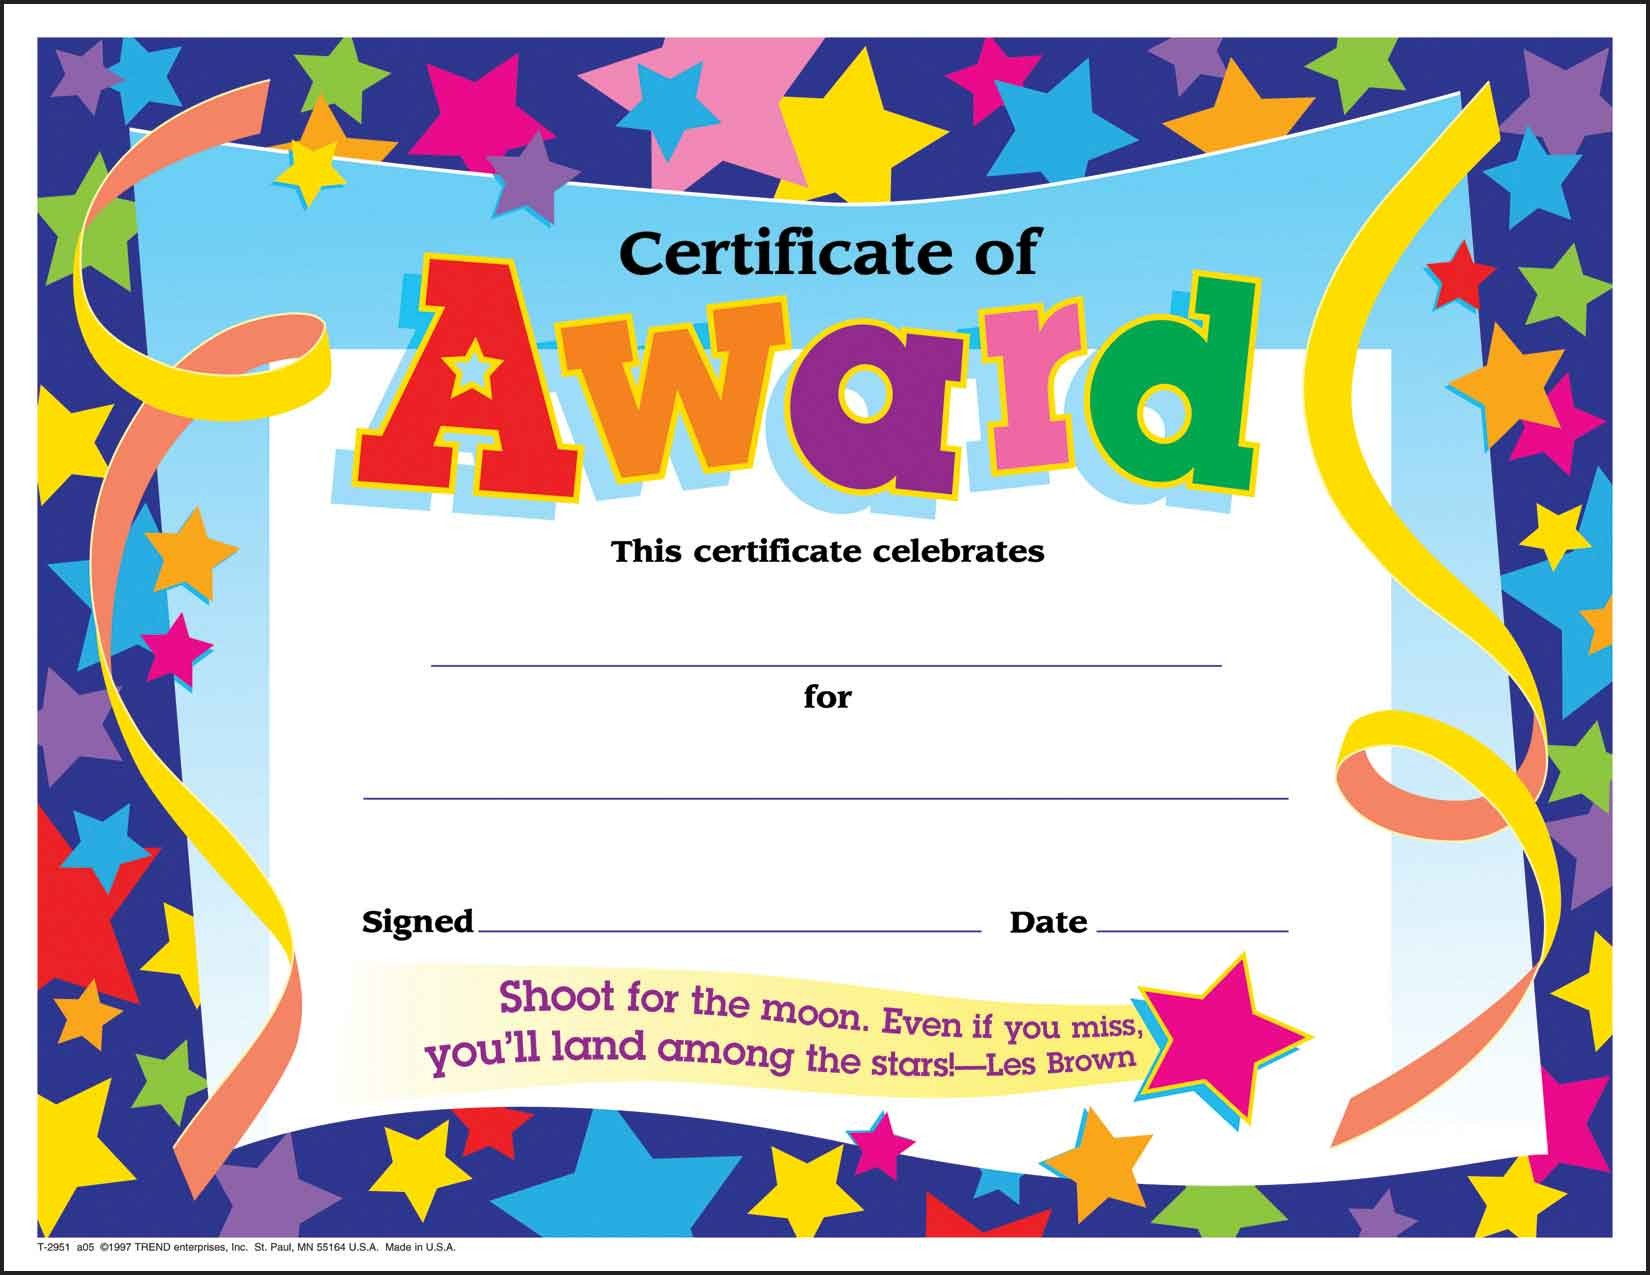 clipart royalty free library Certificate clipart congratulation. Free congratulations cliparts borders.